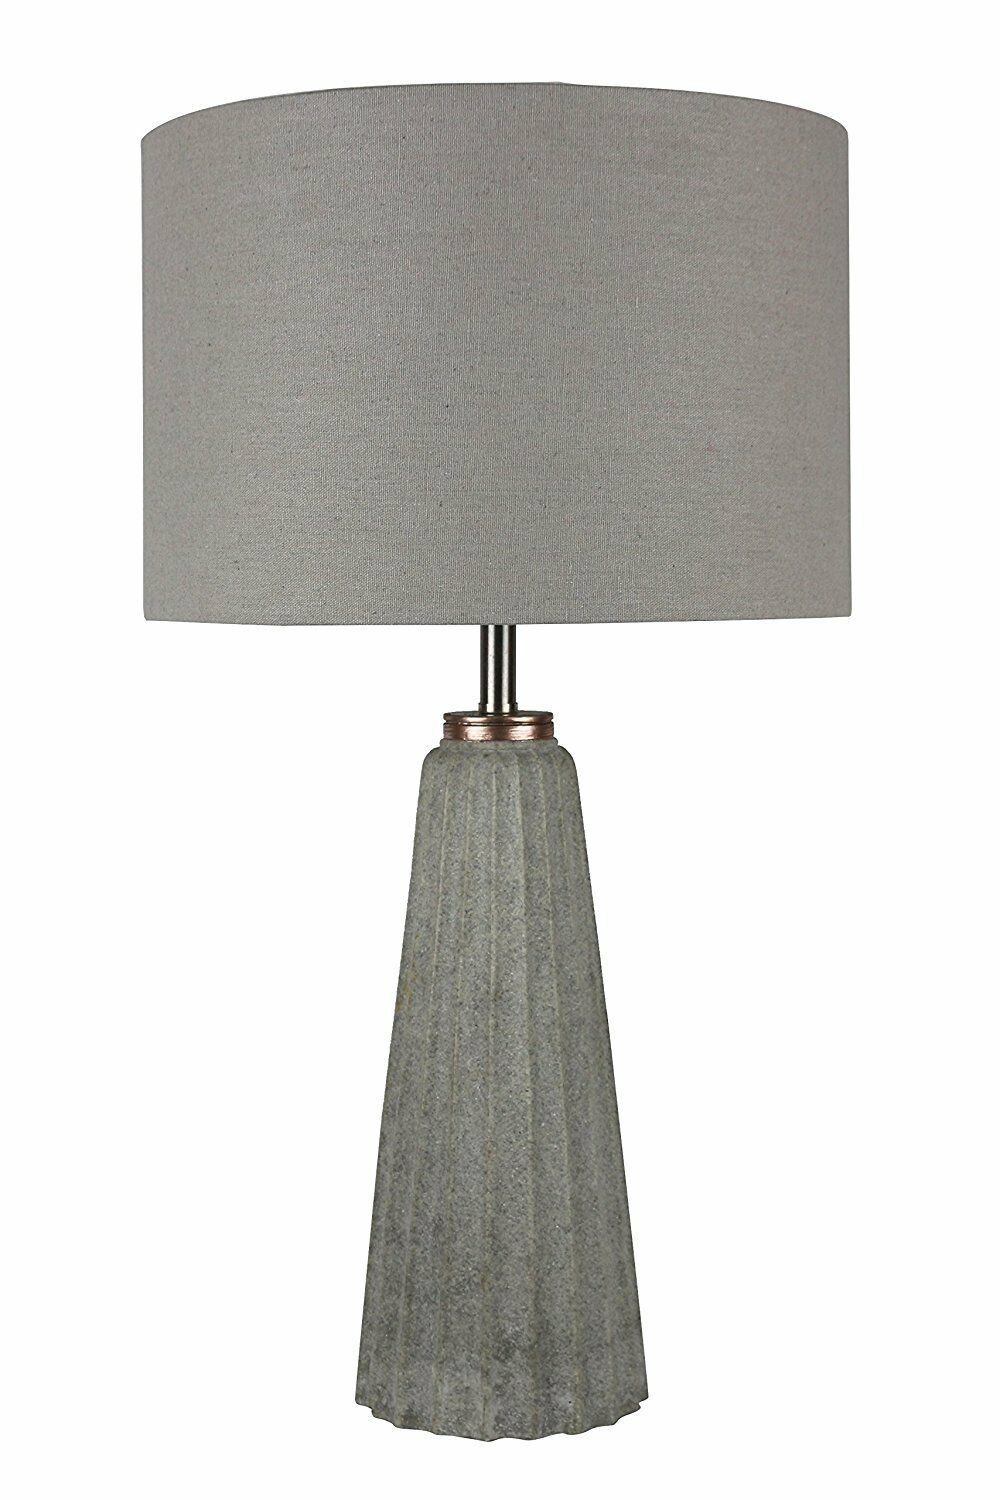 Urbanest gesso table lamp in natural stone finish with light gray picture 1 of 1 geotapseo Choice Image